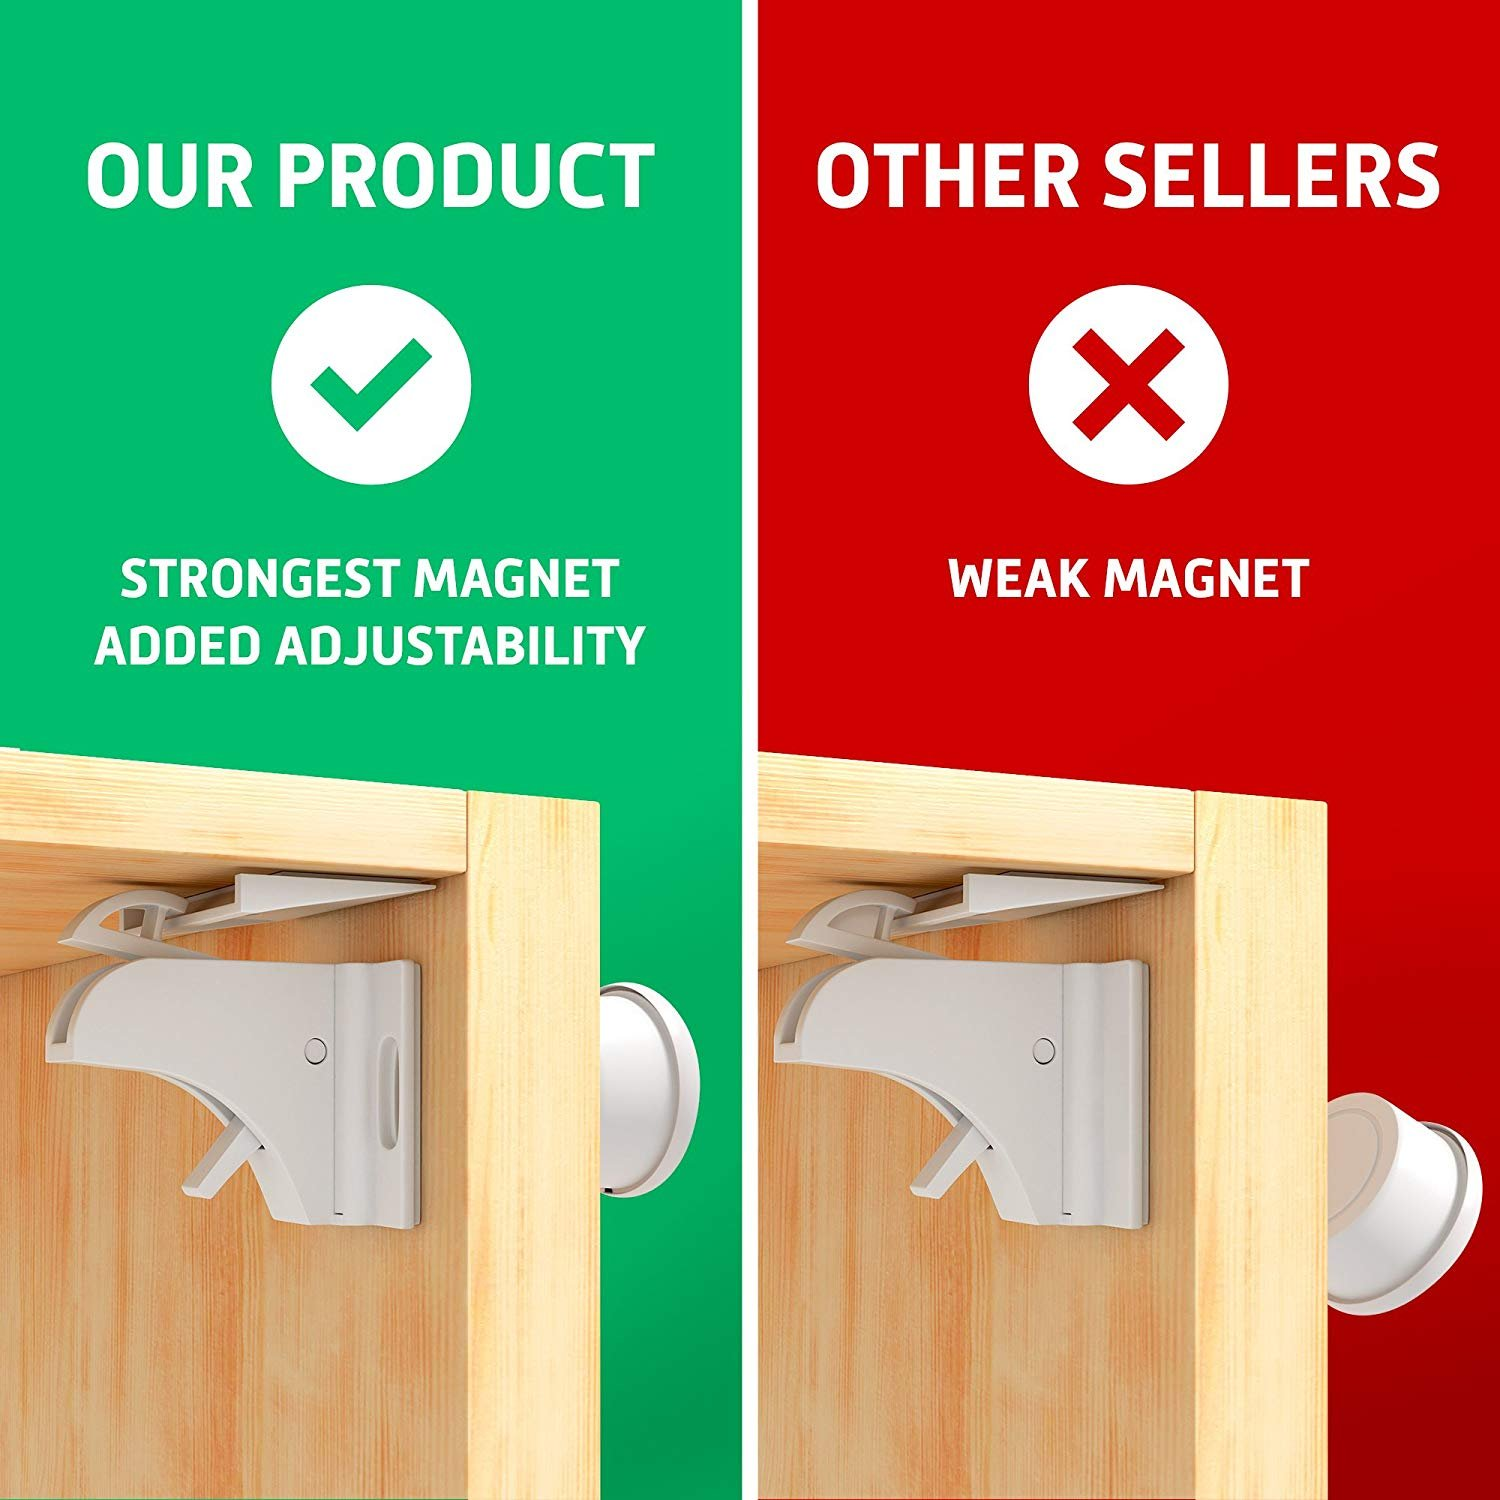 Child Safety Magnetic Cabinet Locks - Invisible Baby Proof Latch Set 8 Locks & 2 Keys Heavy Duty Locking System for Proofing Cabinets Drawers Doors Kitchen with 3M Adhesive (Tools aren't Required) by D-Panda-Safety (Image #3)